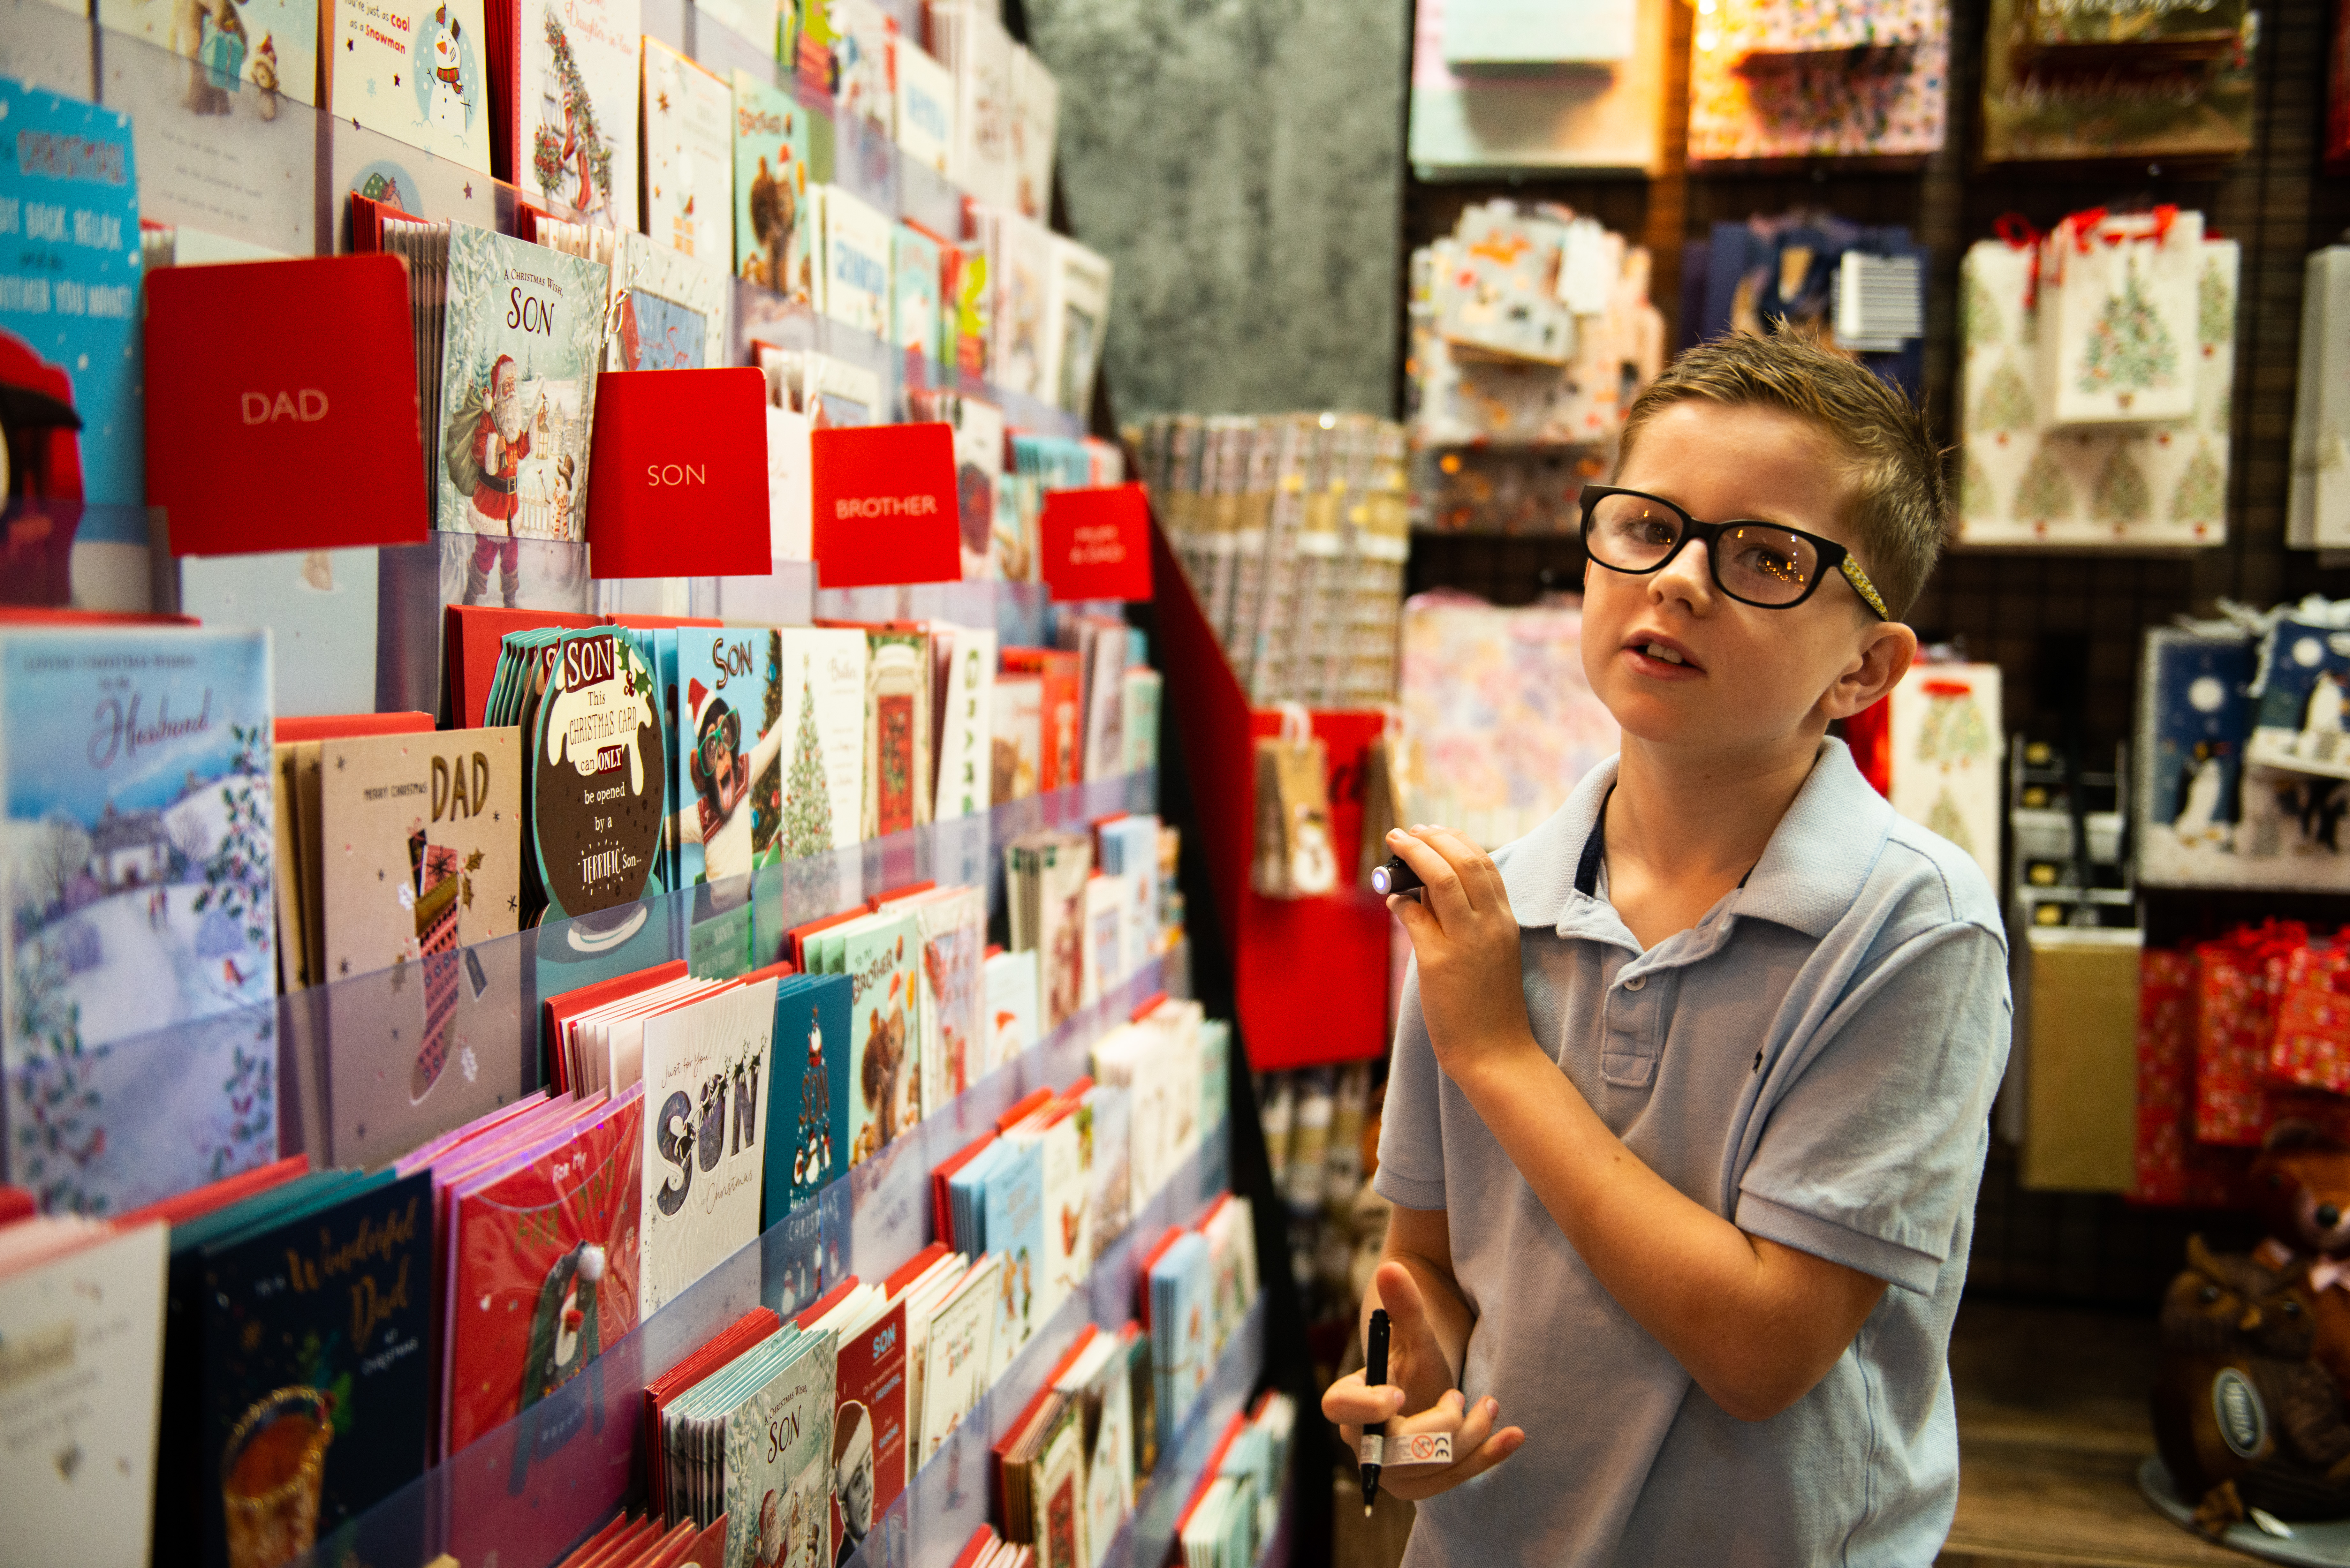 Above: Henry next to the greeting card display, which is being supplied a UKG brokerage scheme.